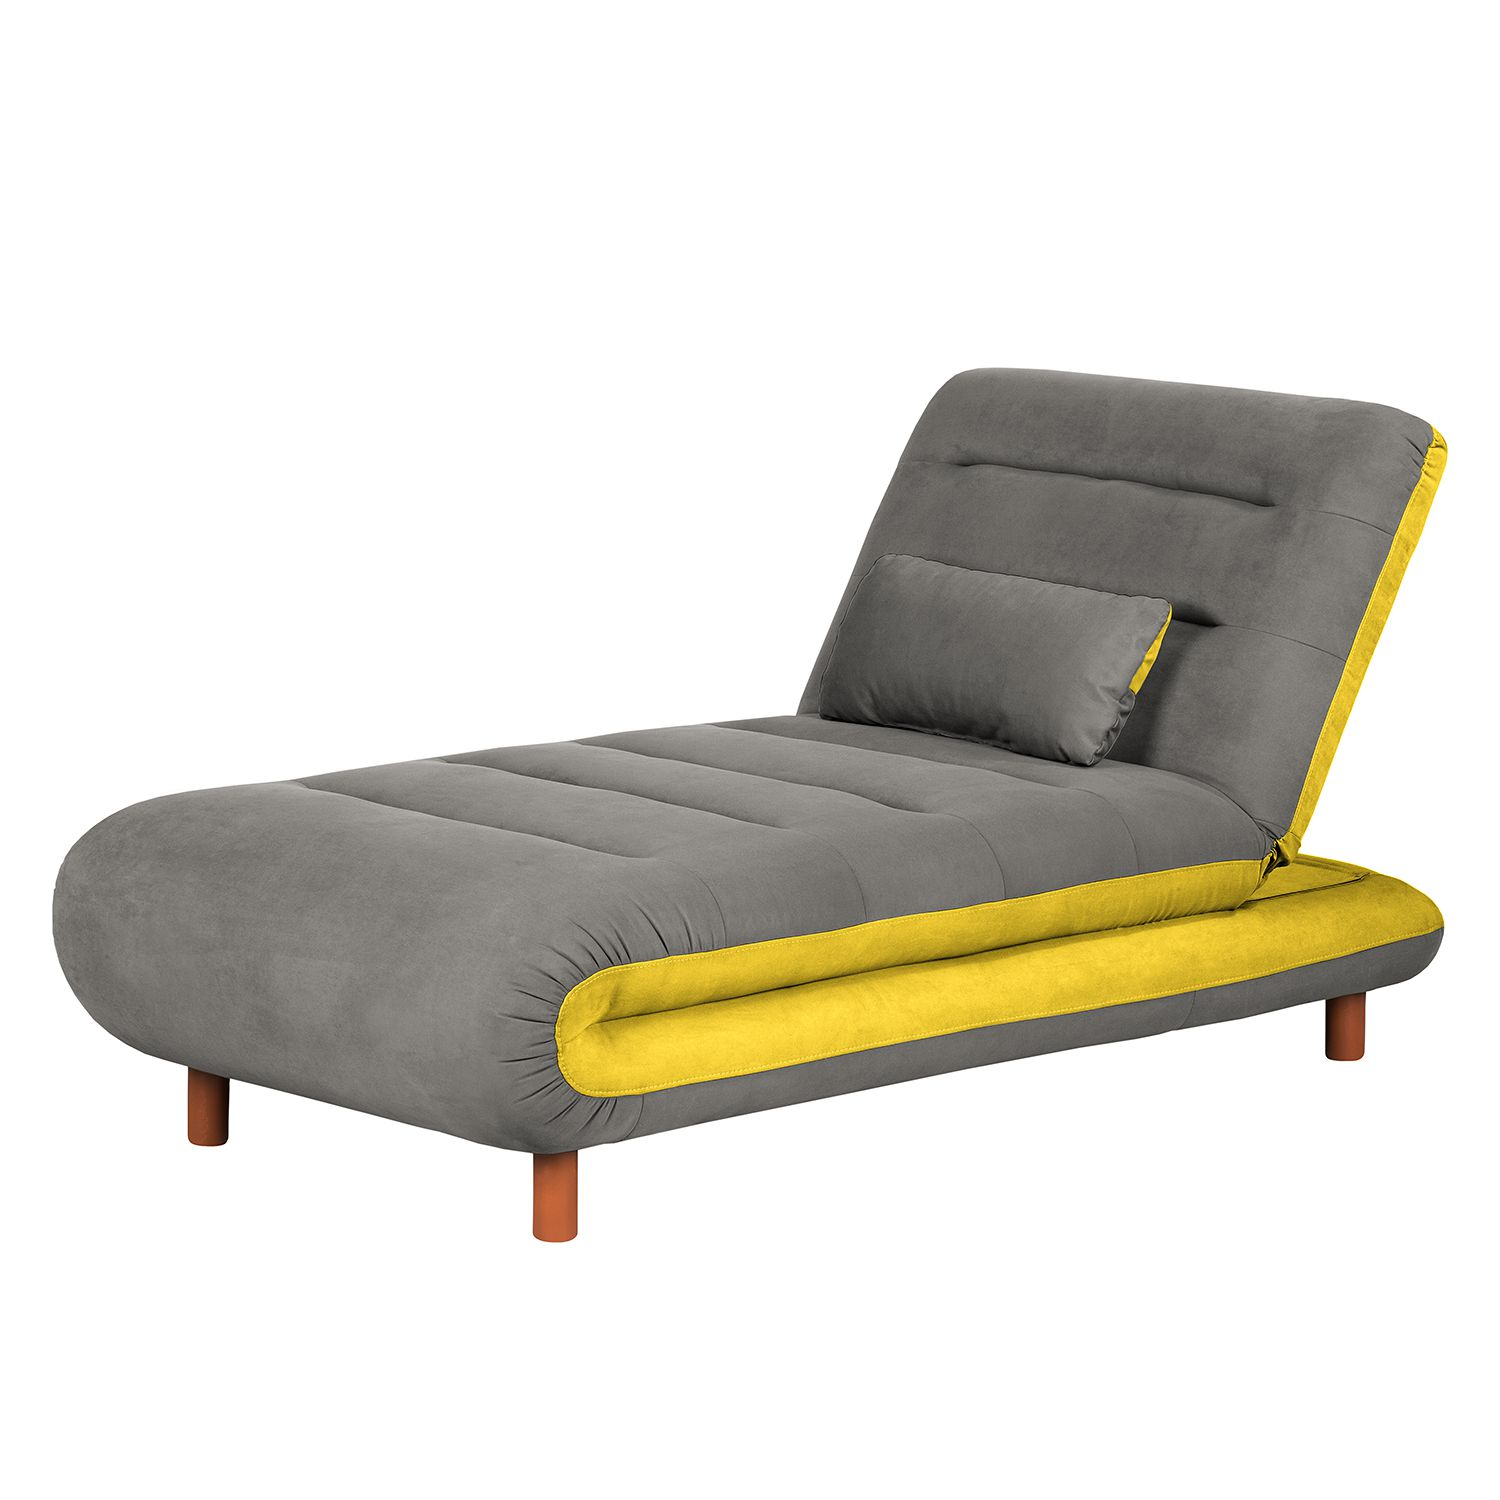 Chaiselongue Energy - Webstoff - Grau / Gelb, mooved kaufen on chaise recliner chair, chaise sofa sleeper, chaise furniture,